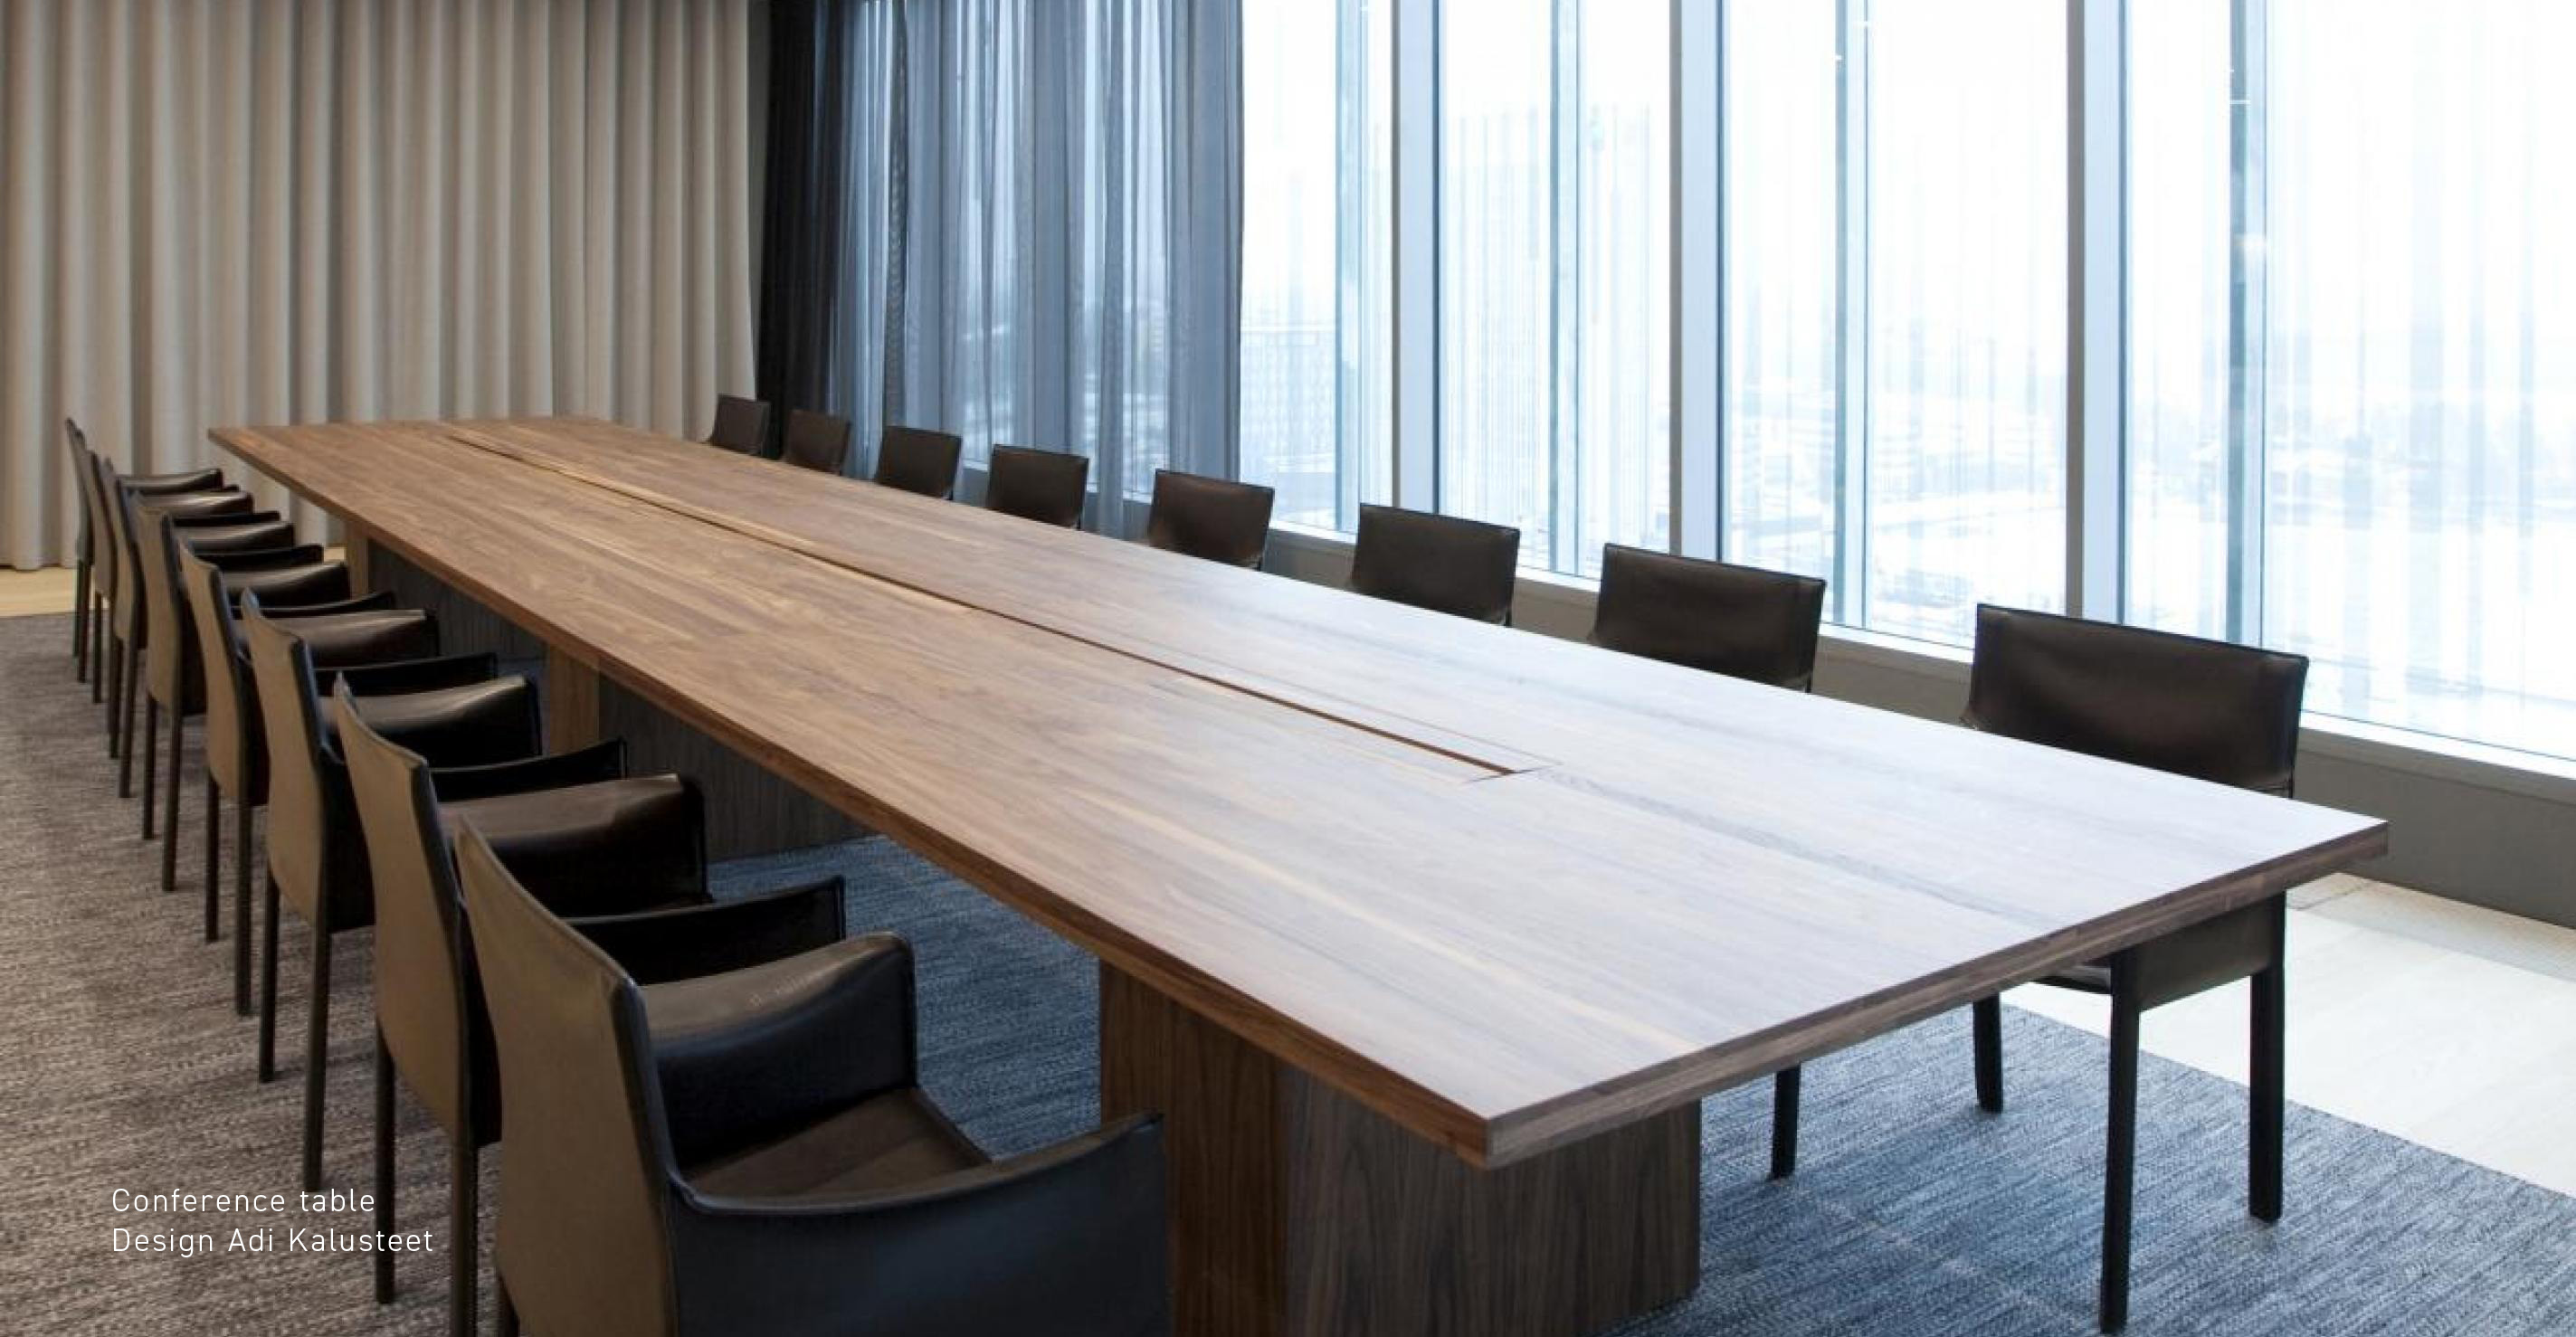 Conference table reference